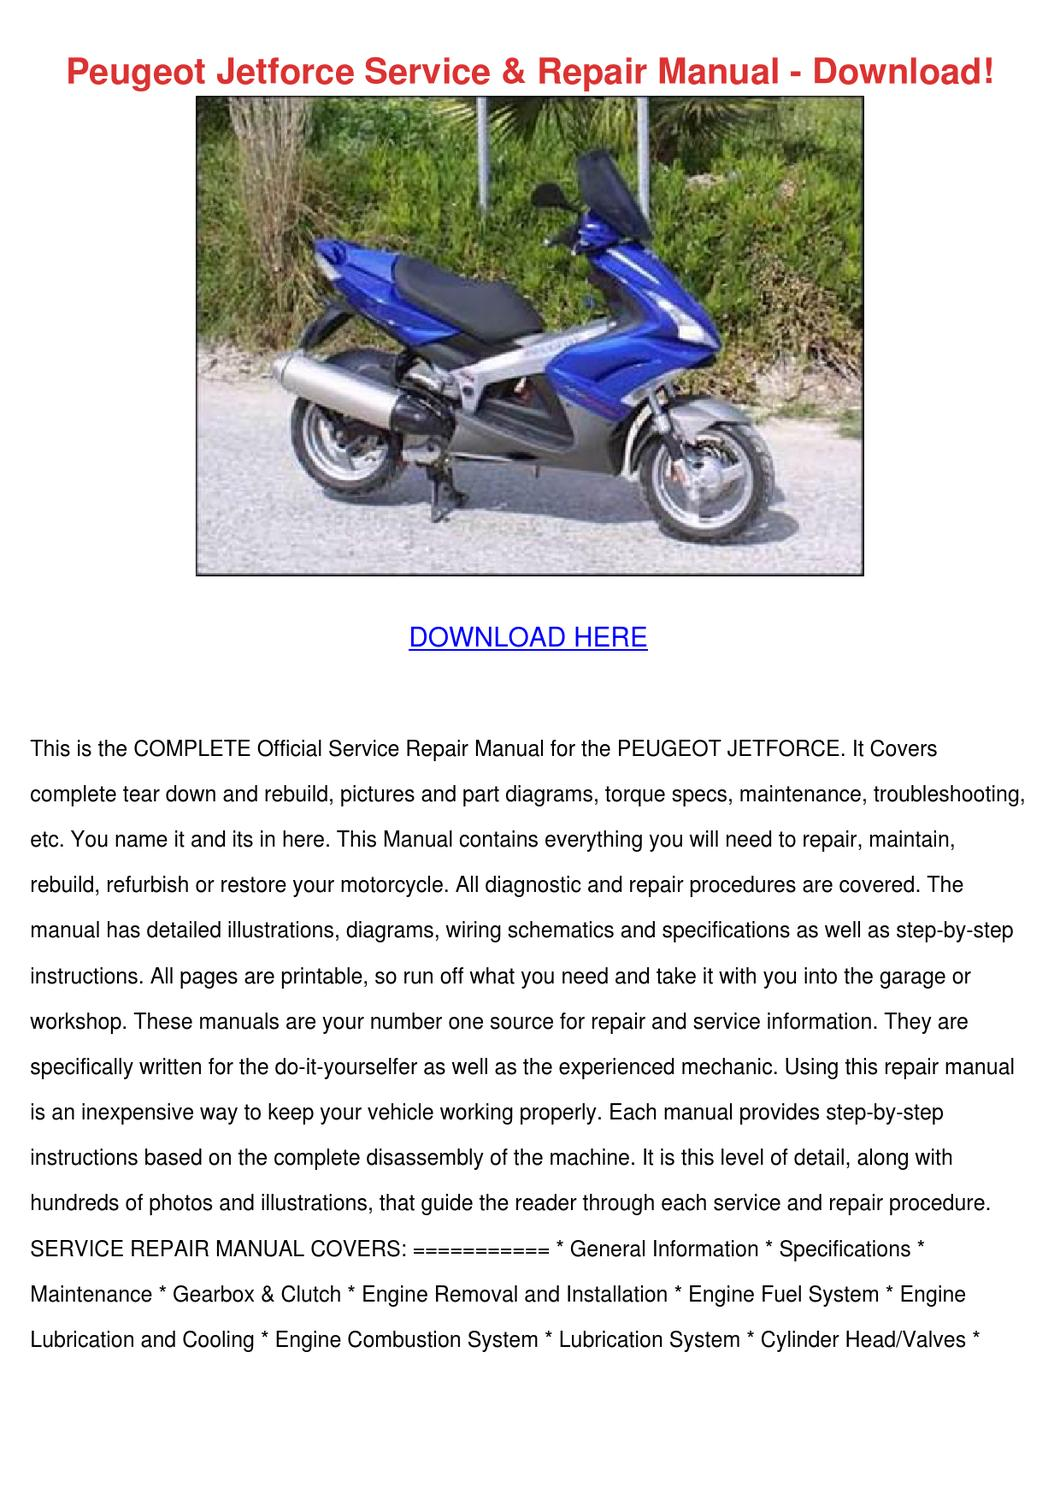 peugeot jetforce service repair manual downlo by jonashargis - issuu  issuu